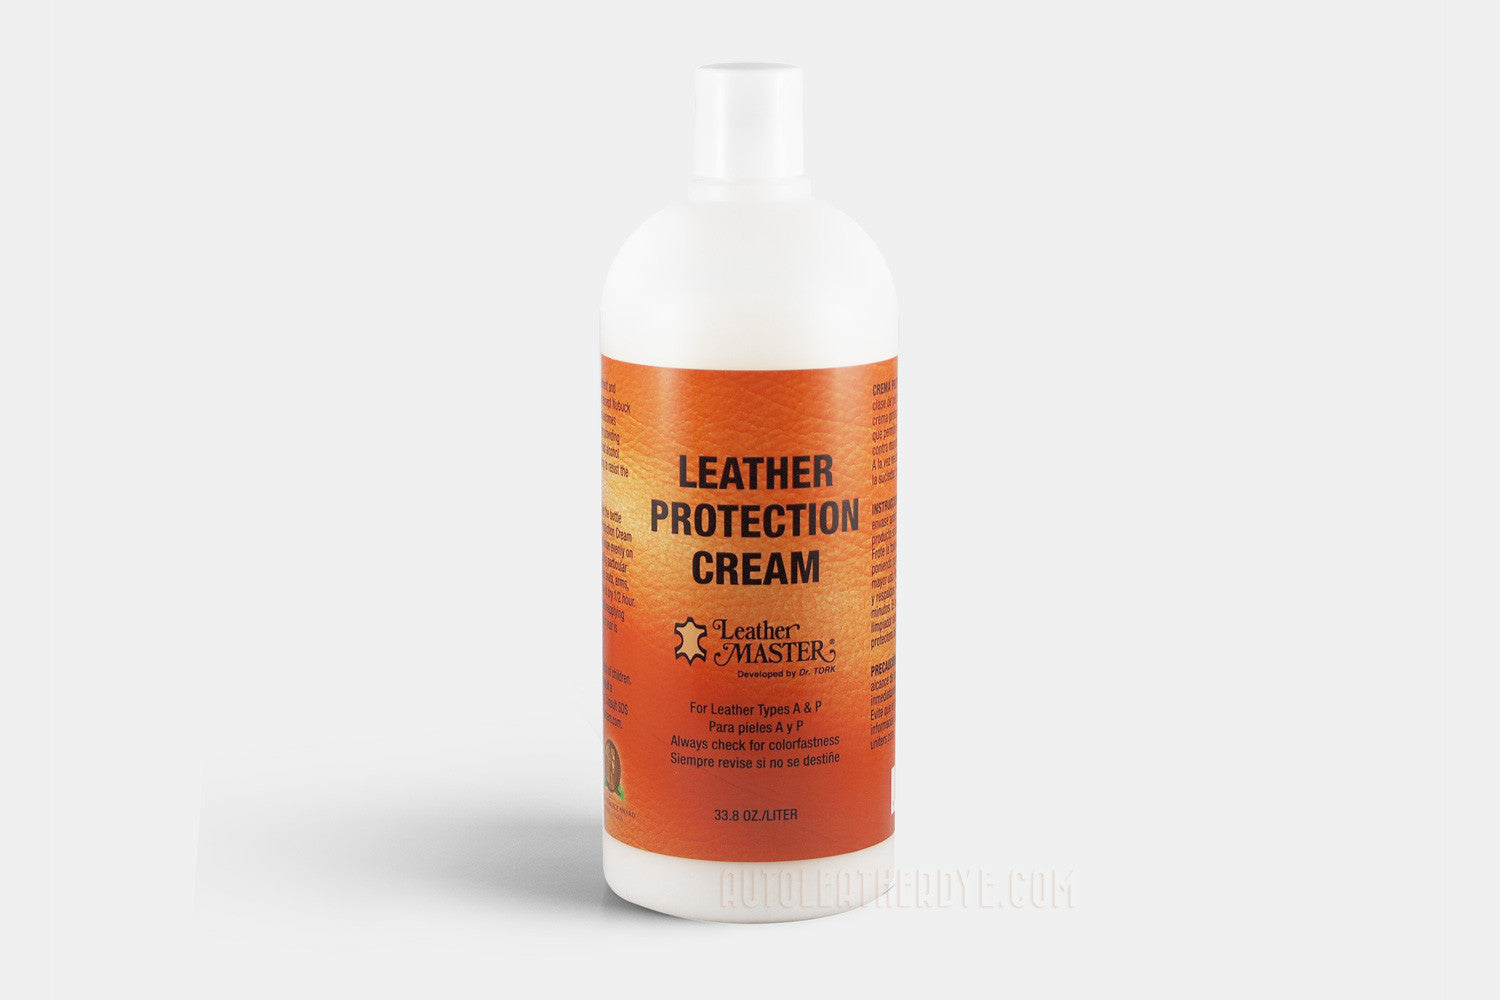 leather master protection cream instructions